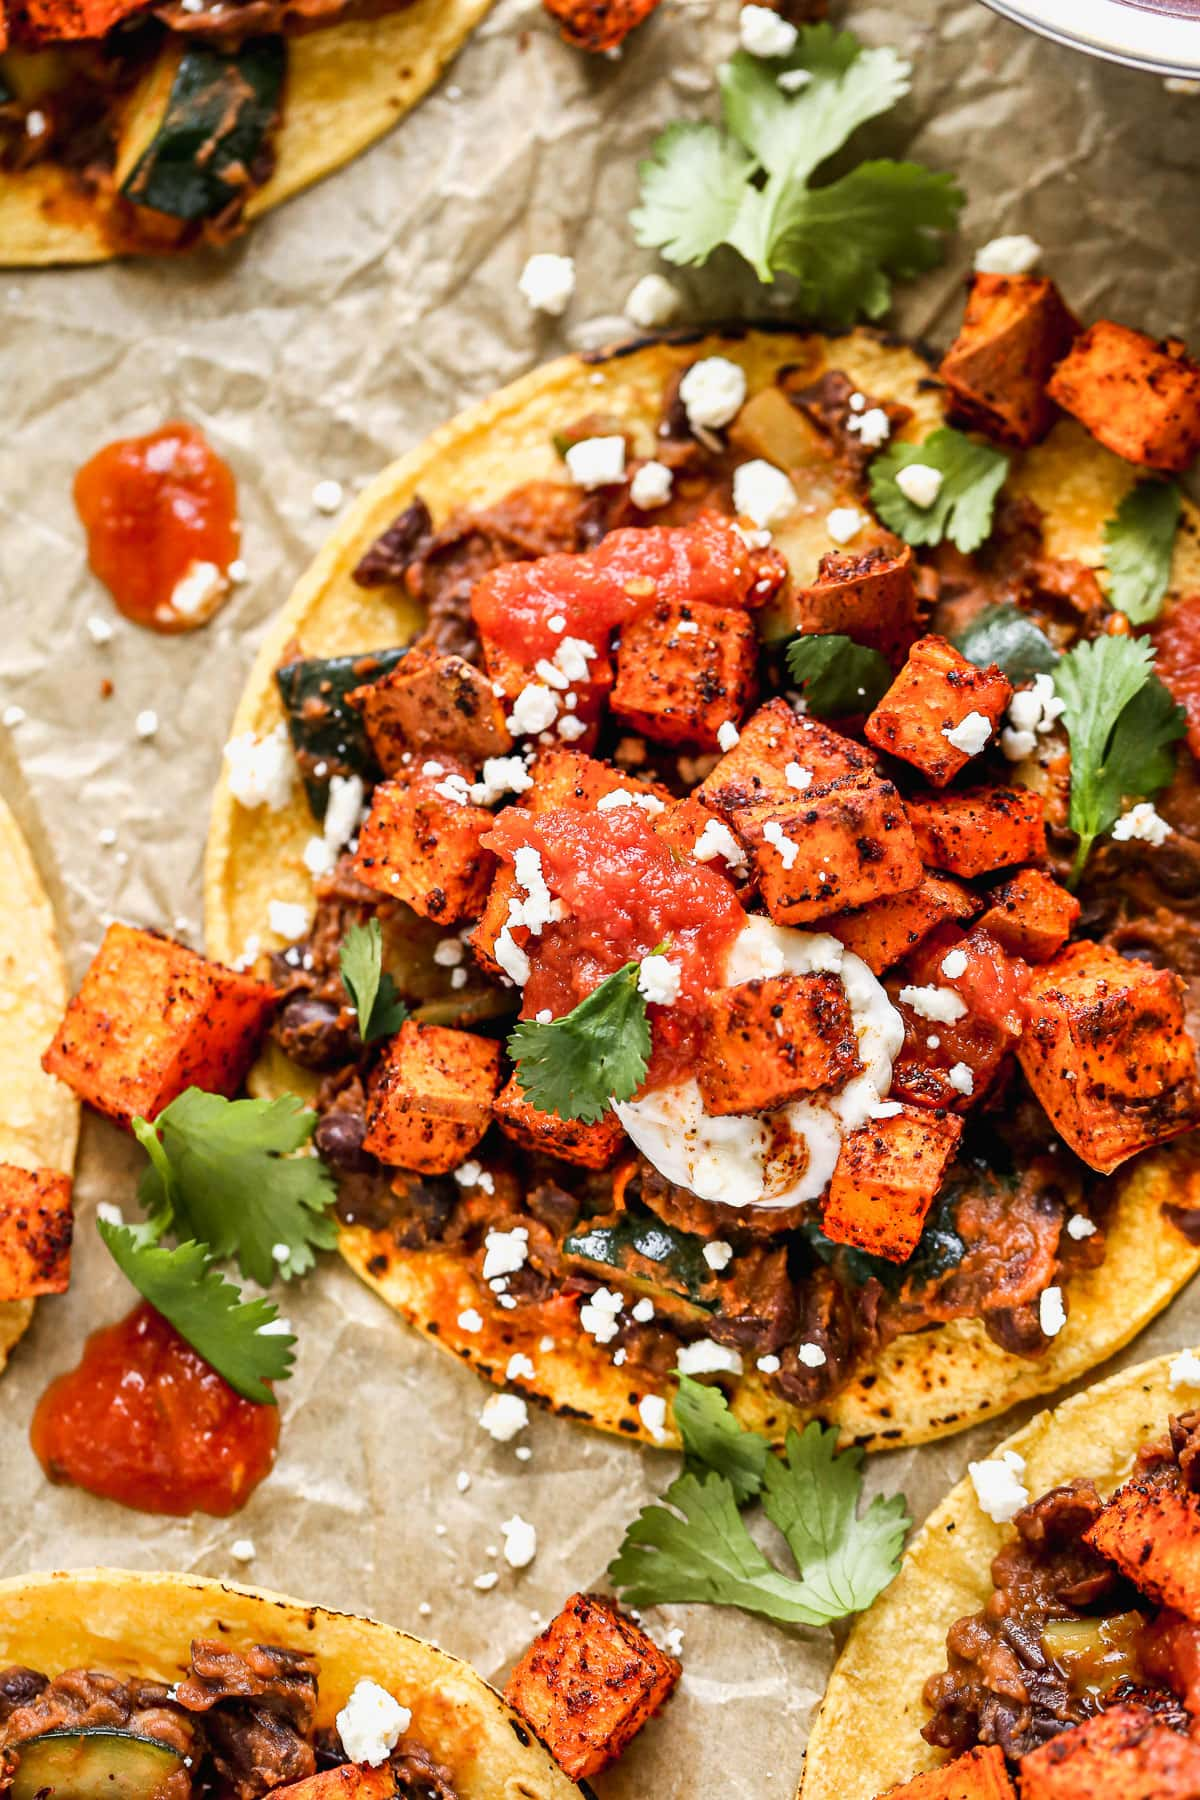 A vegetarian taco with sweet potatoes